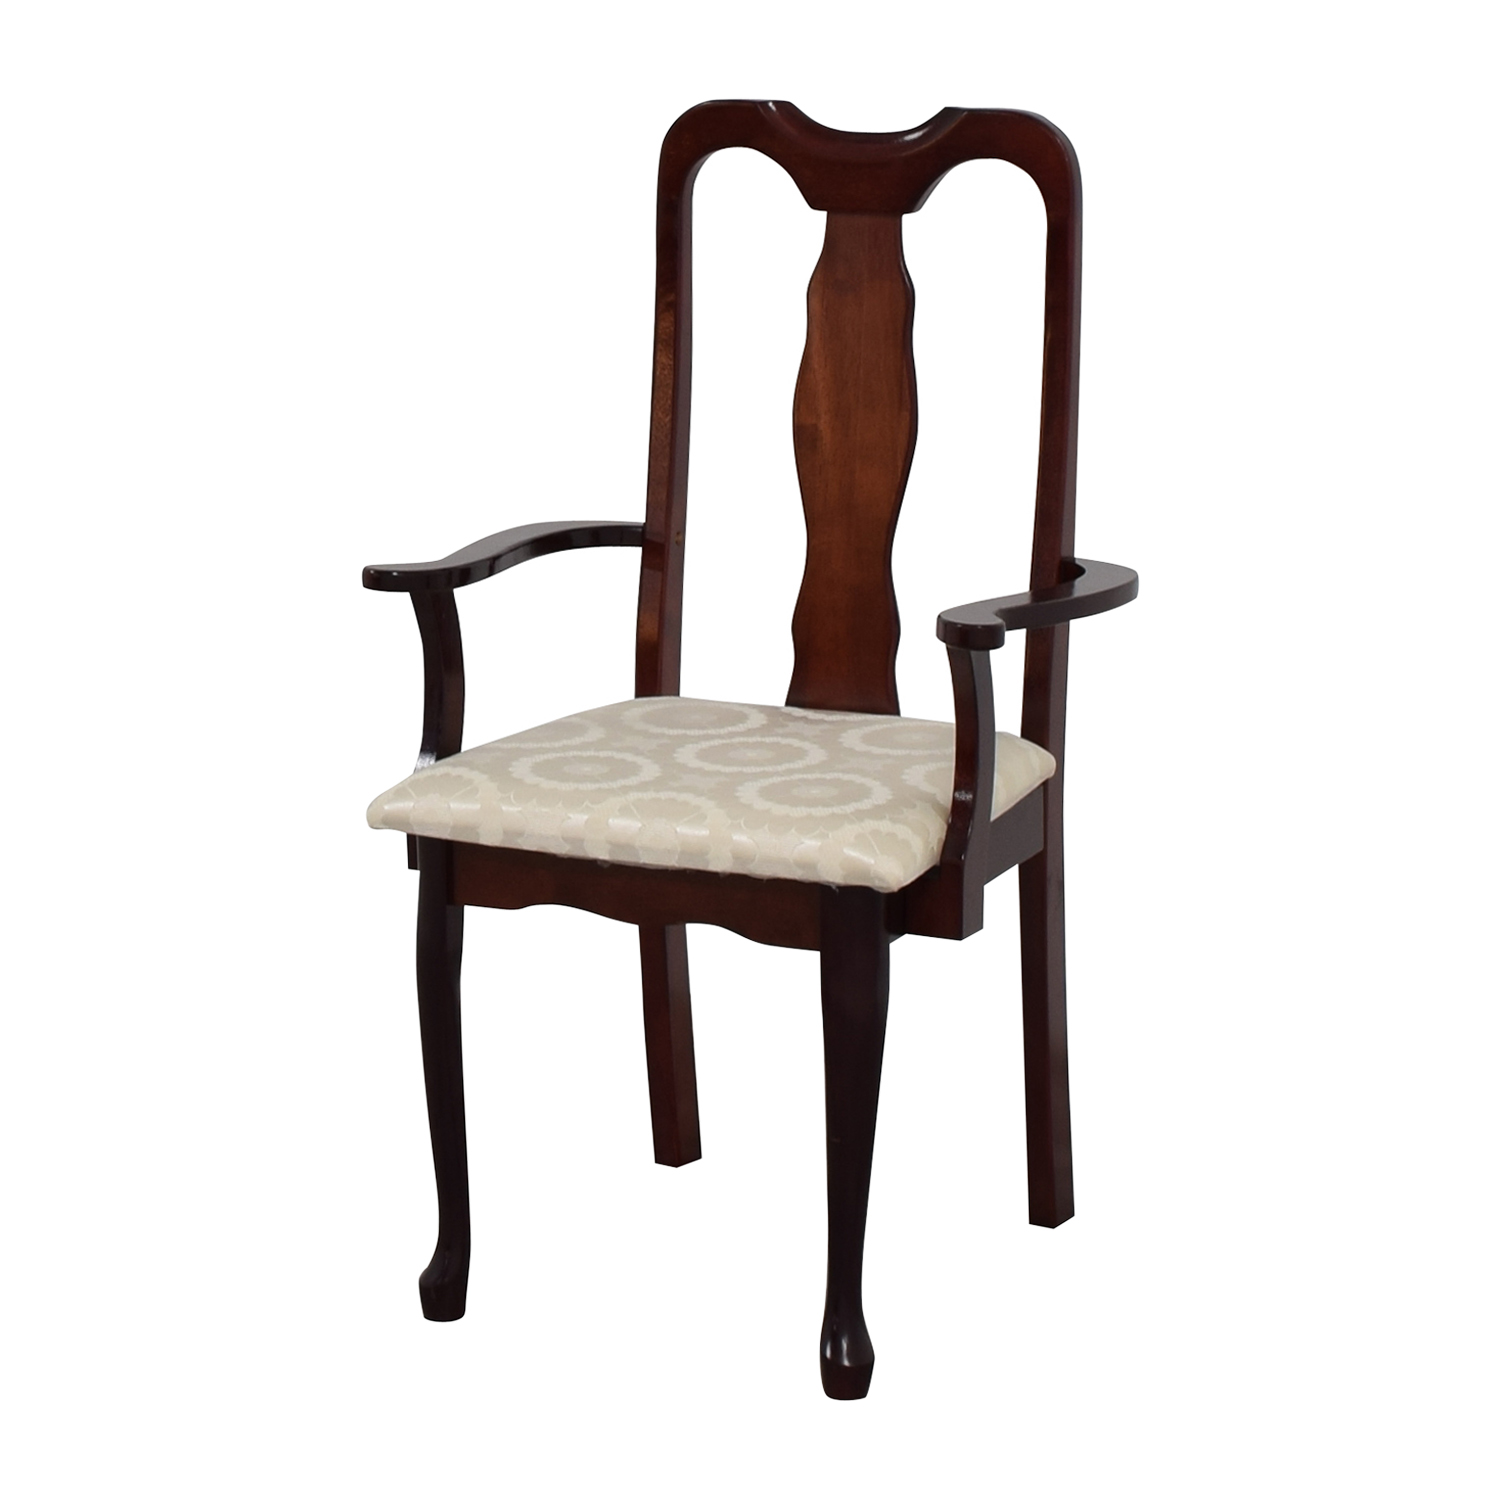 revolving chair second hand counter height kitchen chairs 90 off cherry wood arm in white upholstery